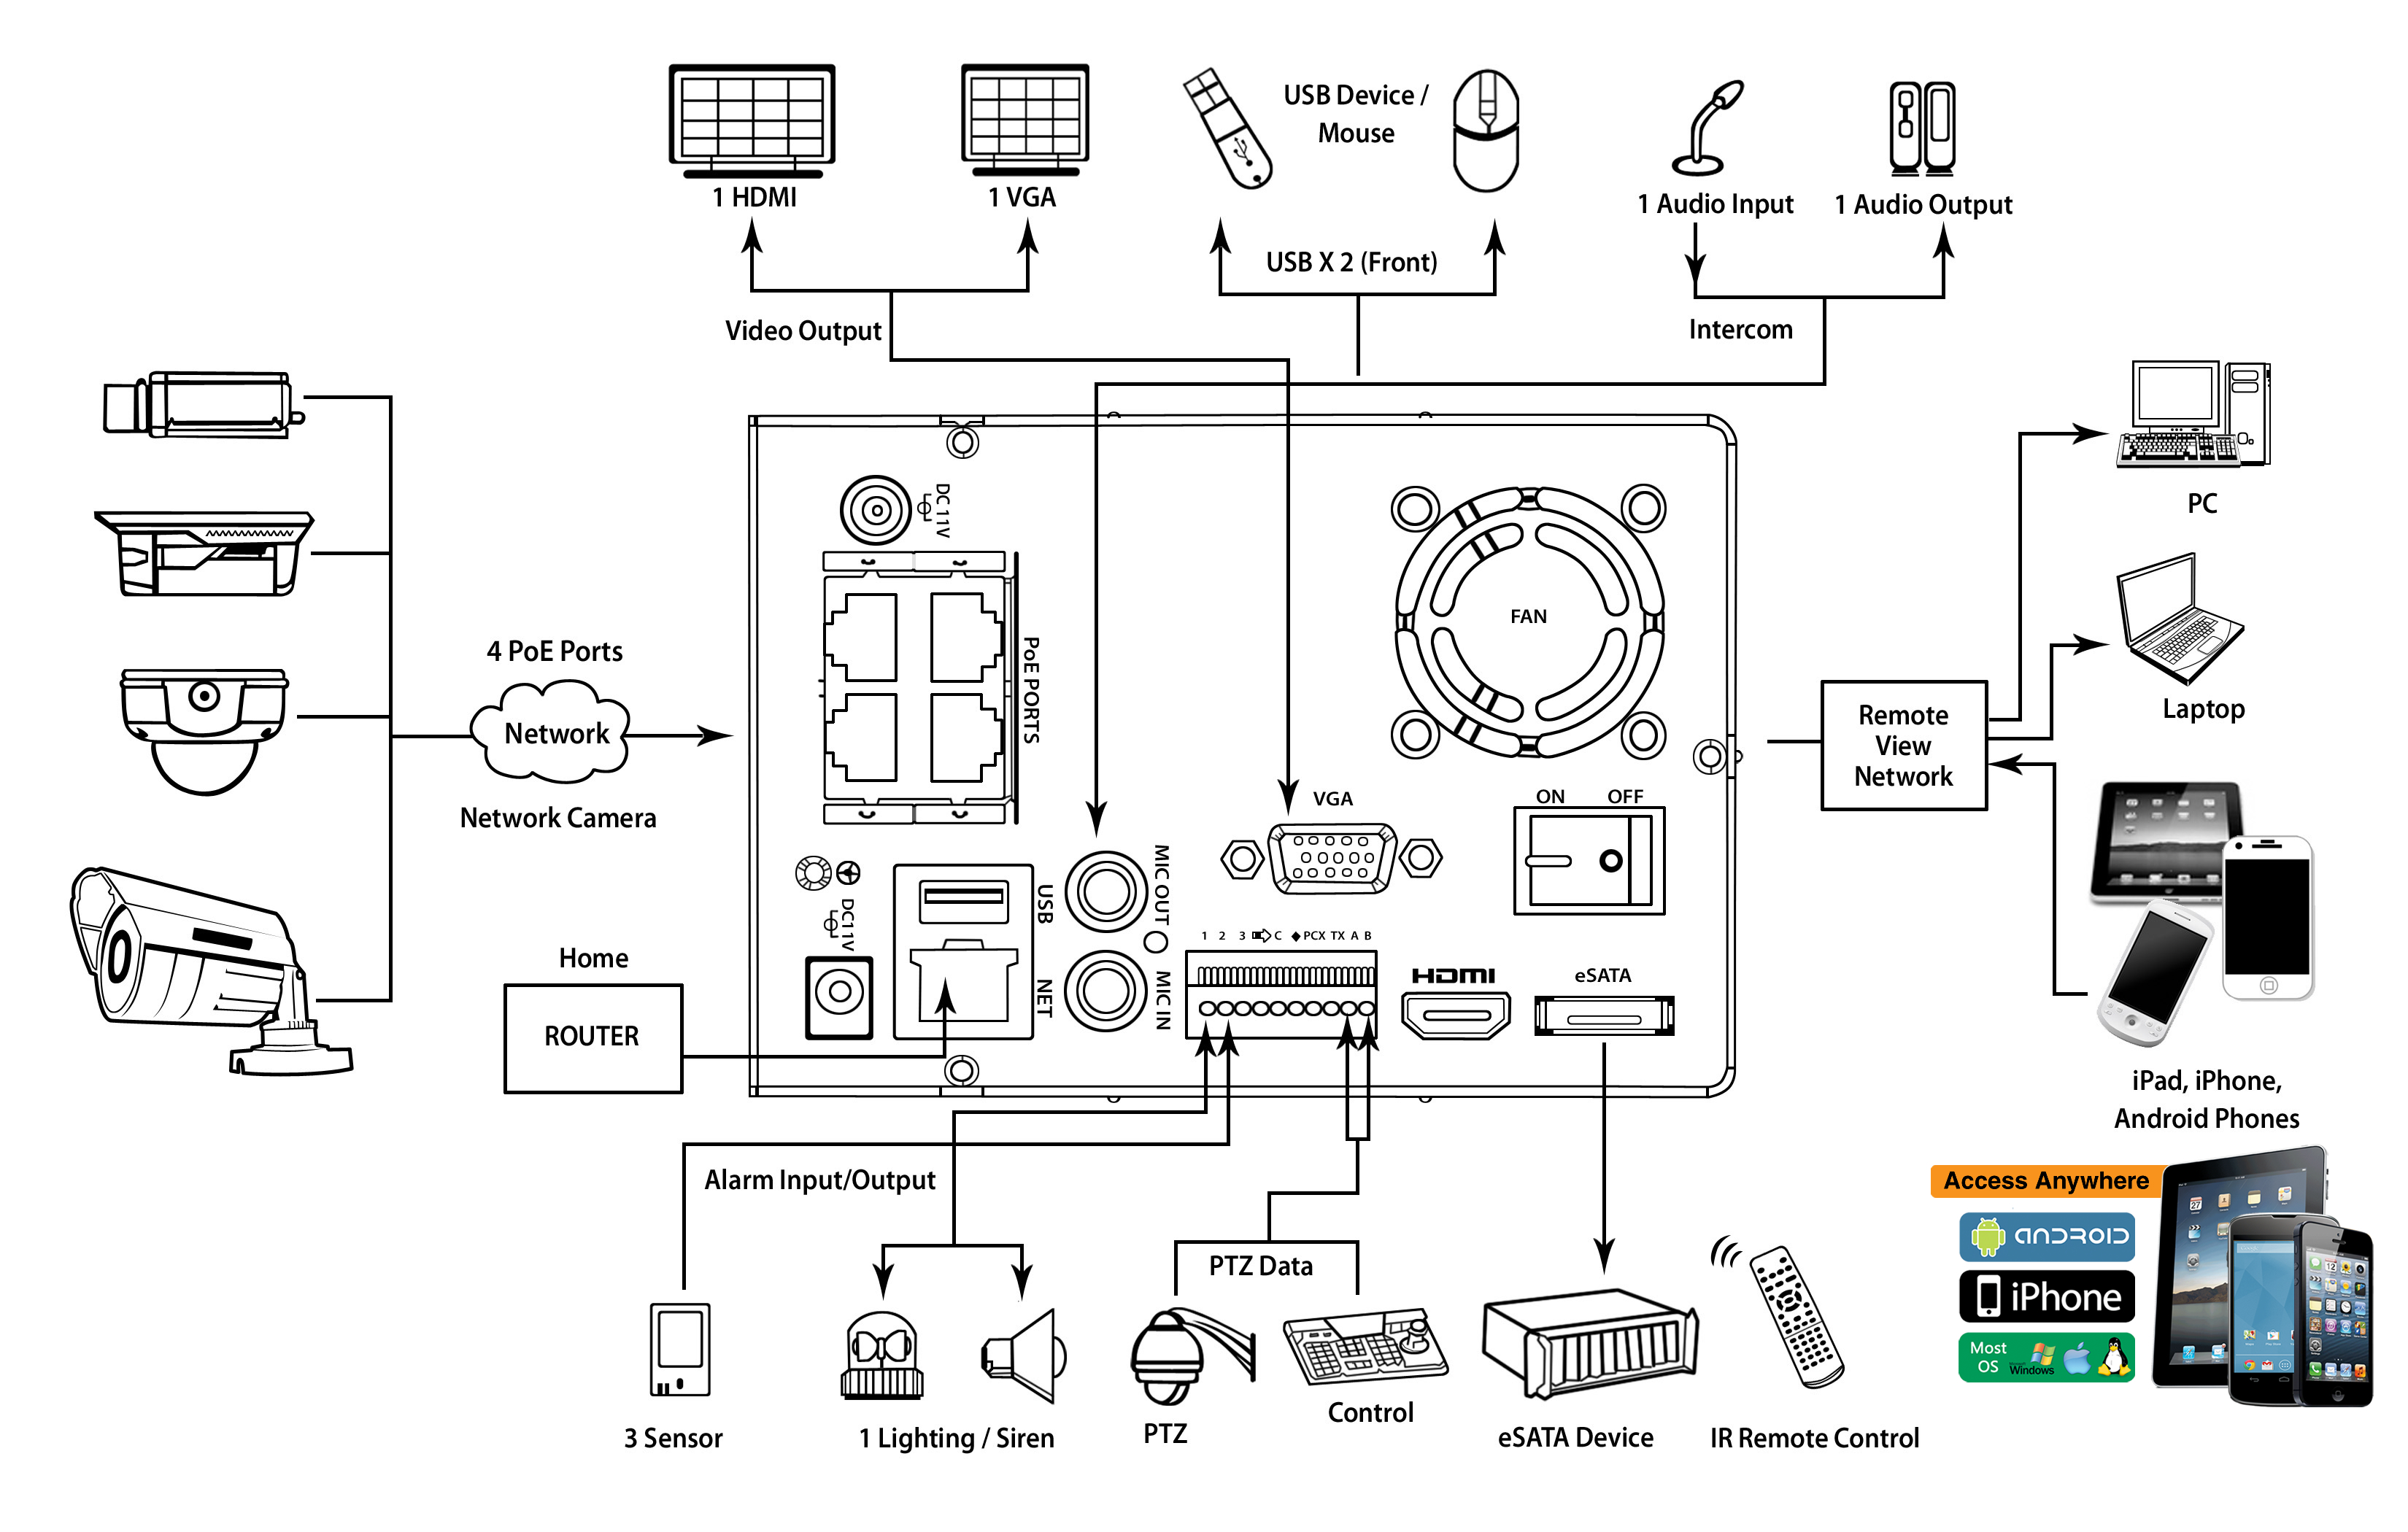 Samsung Security Camera Wiring Diagram from static-cdn.imageservice.cloud